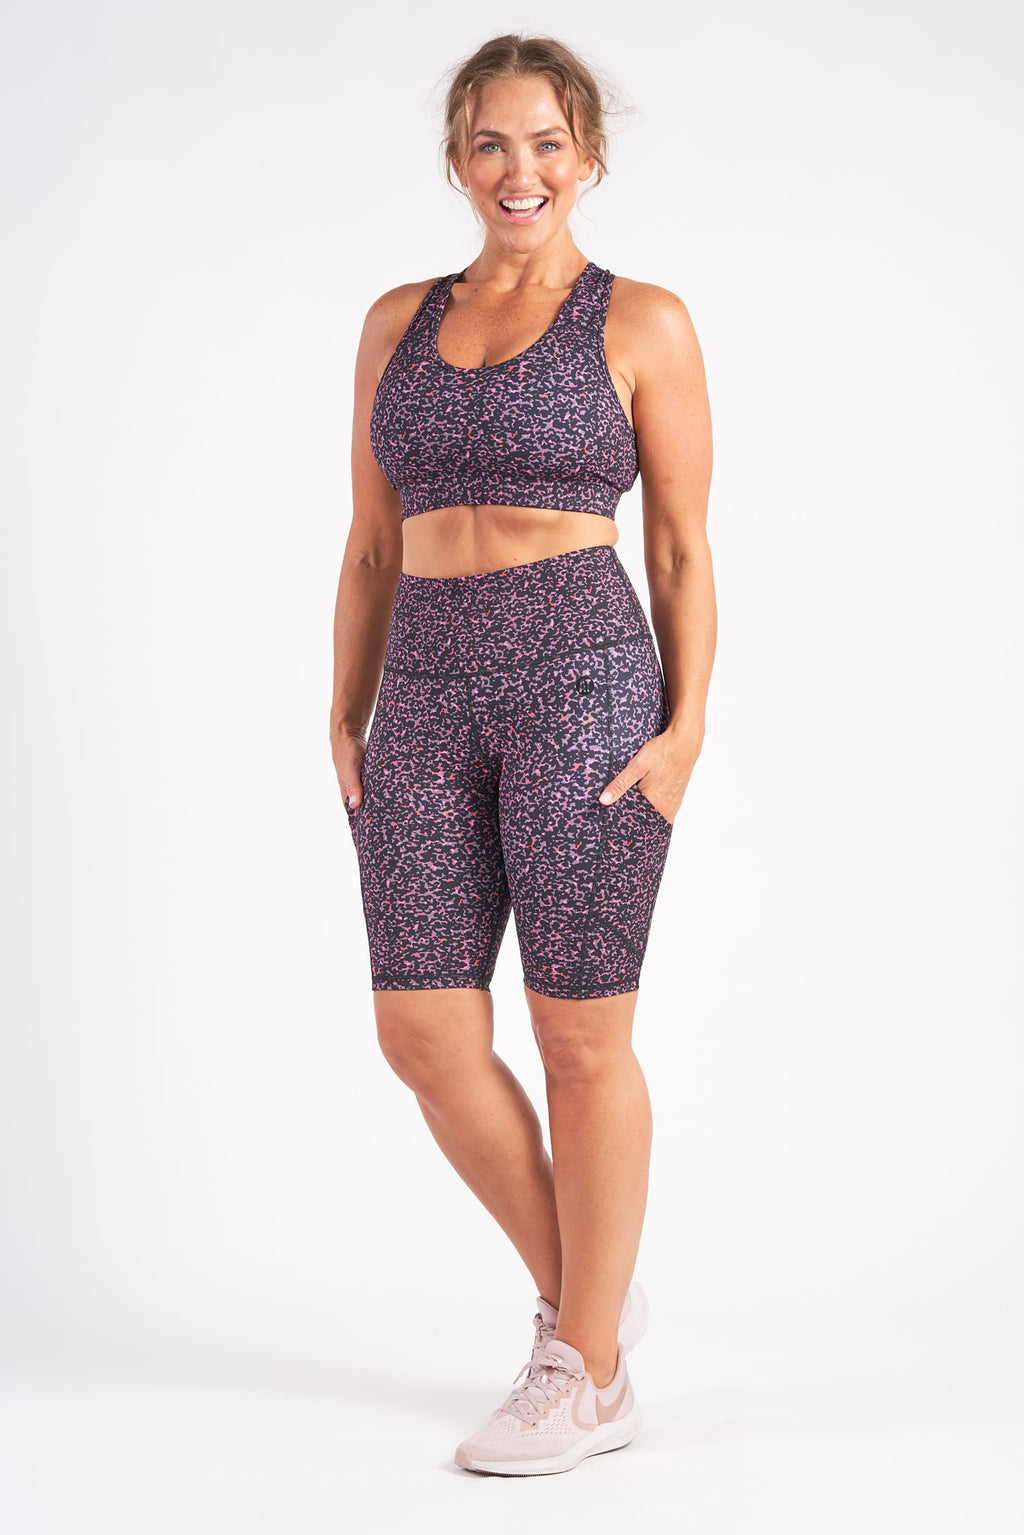 racerback-sports-crop-move4dignity-large-front2